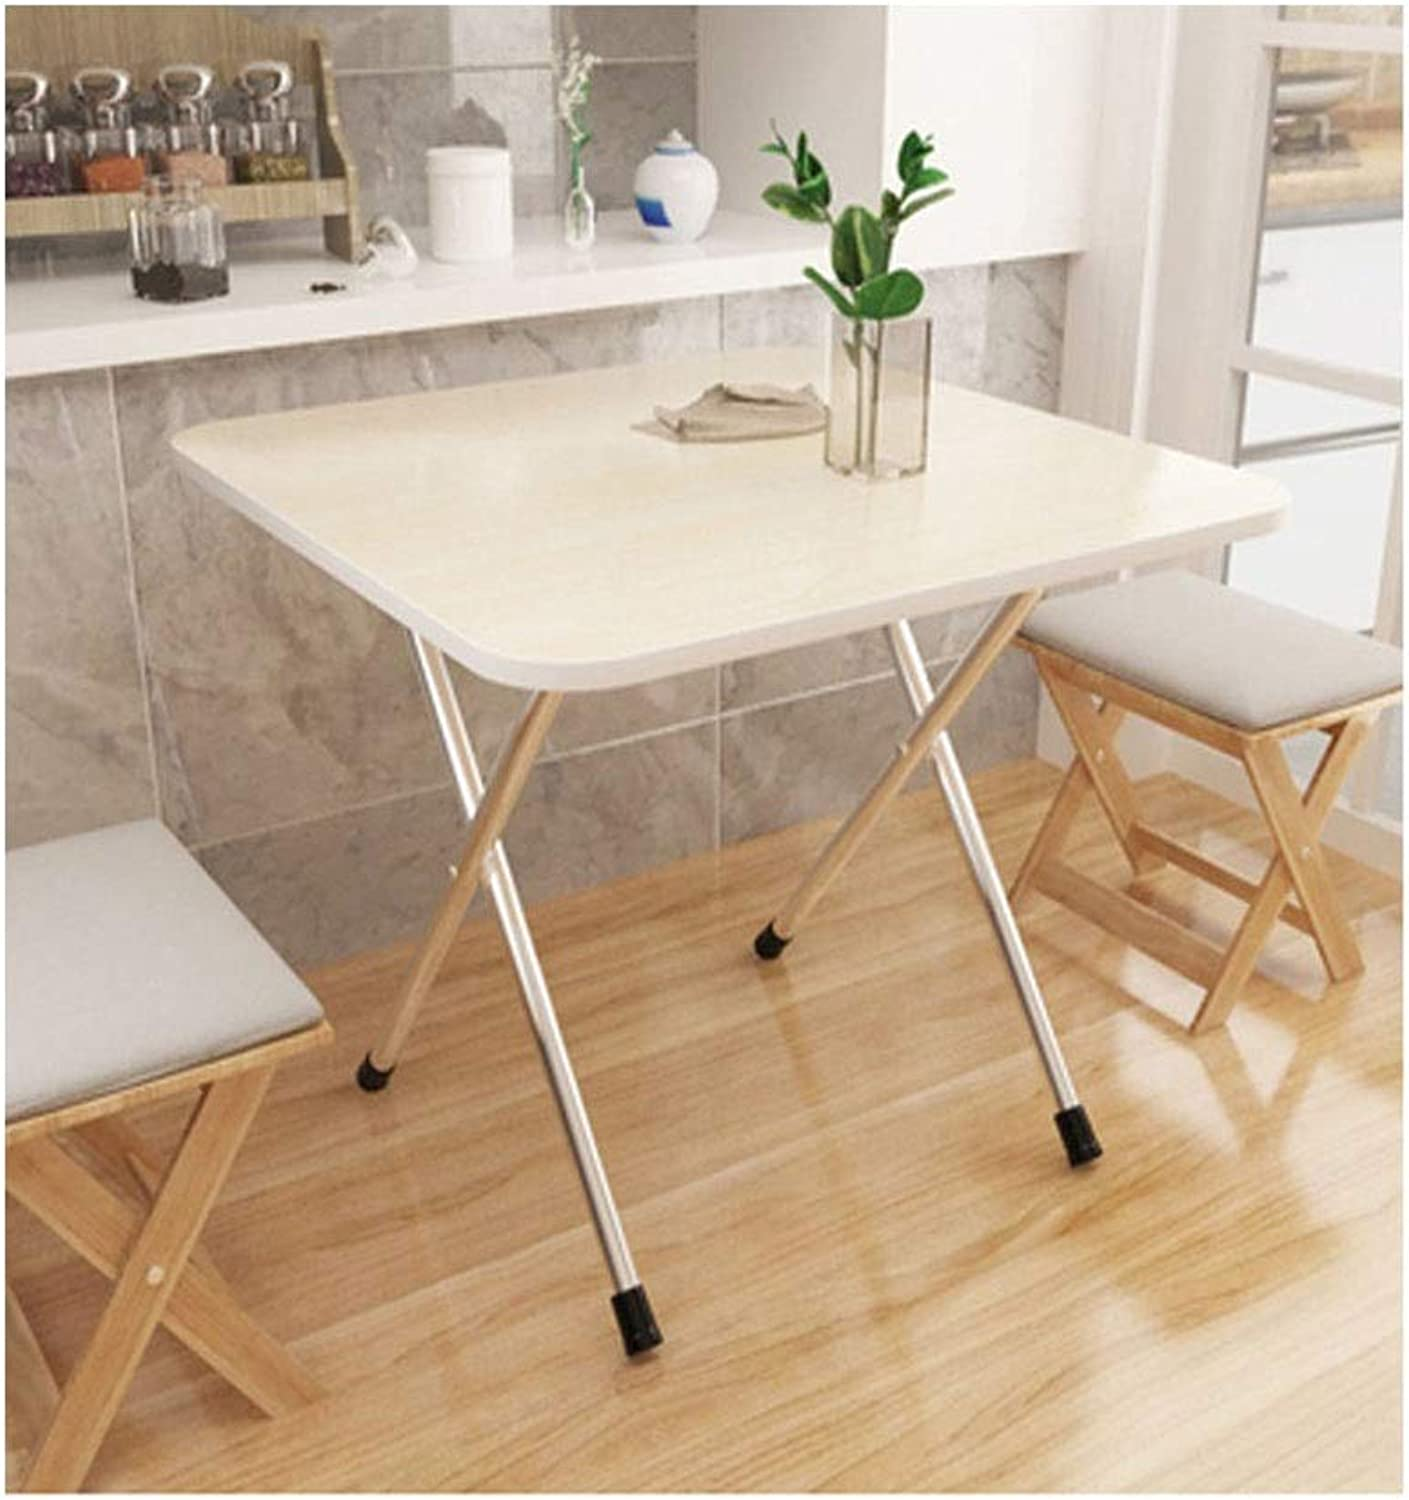 Tables and Chairs, Folding Tables and Chairs, Small Simple, Portable Folding Table, Can Be Used Indoors and Outdoors (color   White, Size   60m60cm50cm)